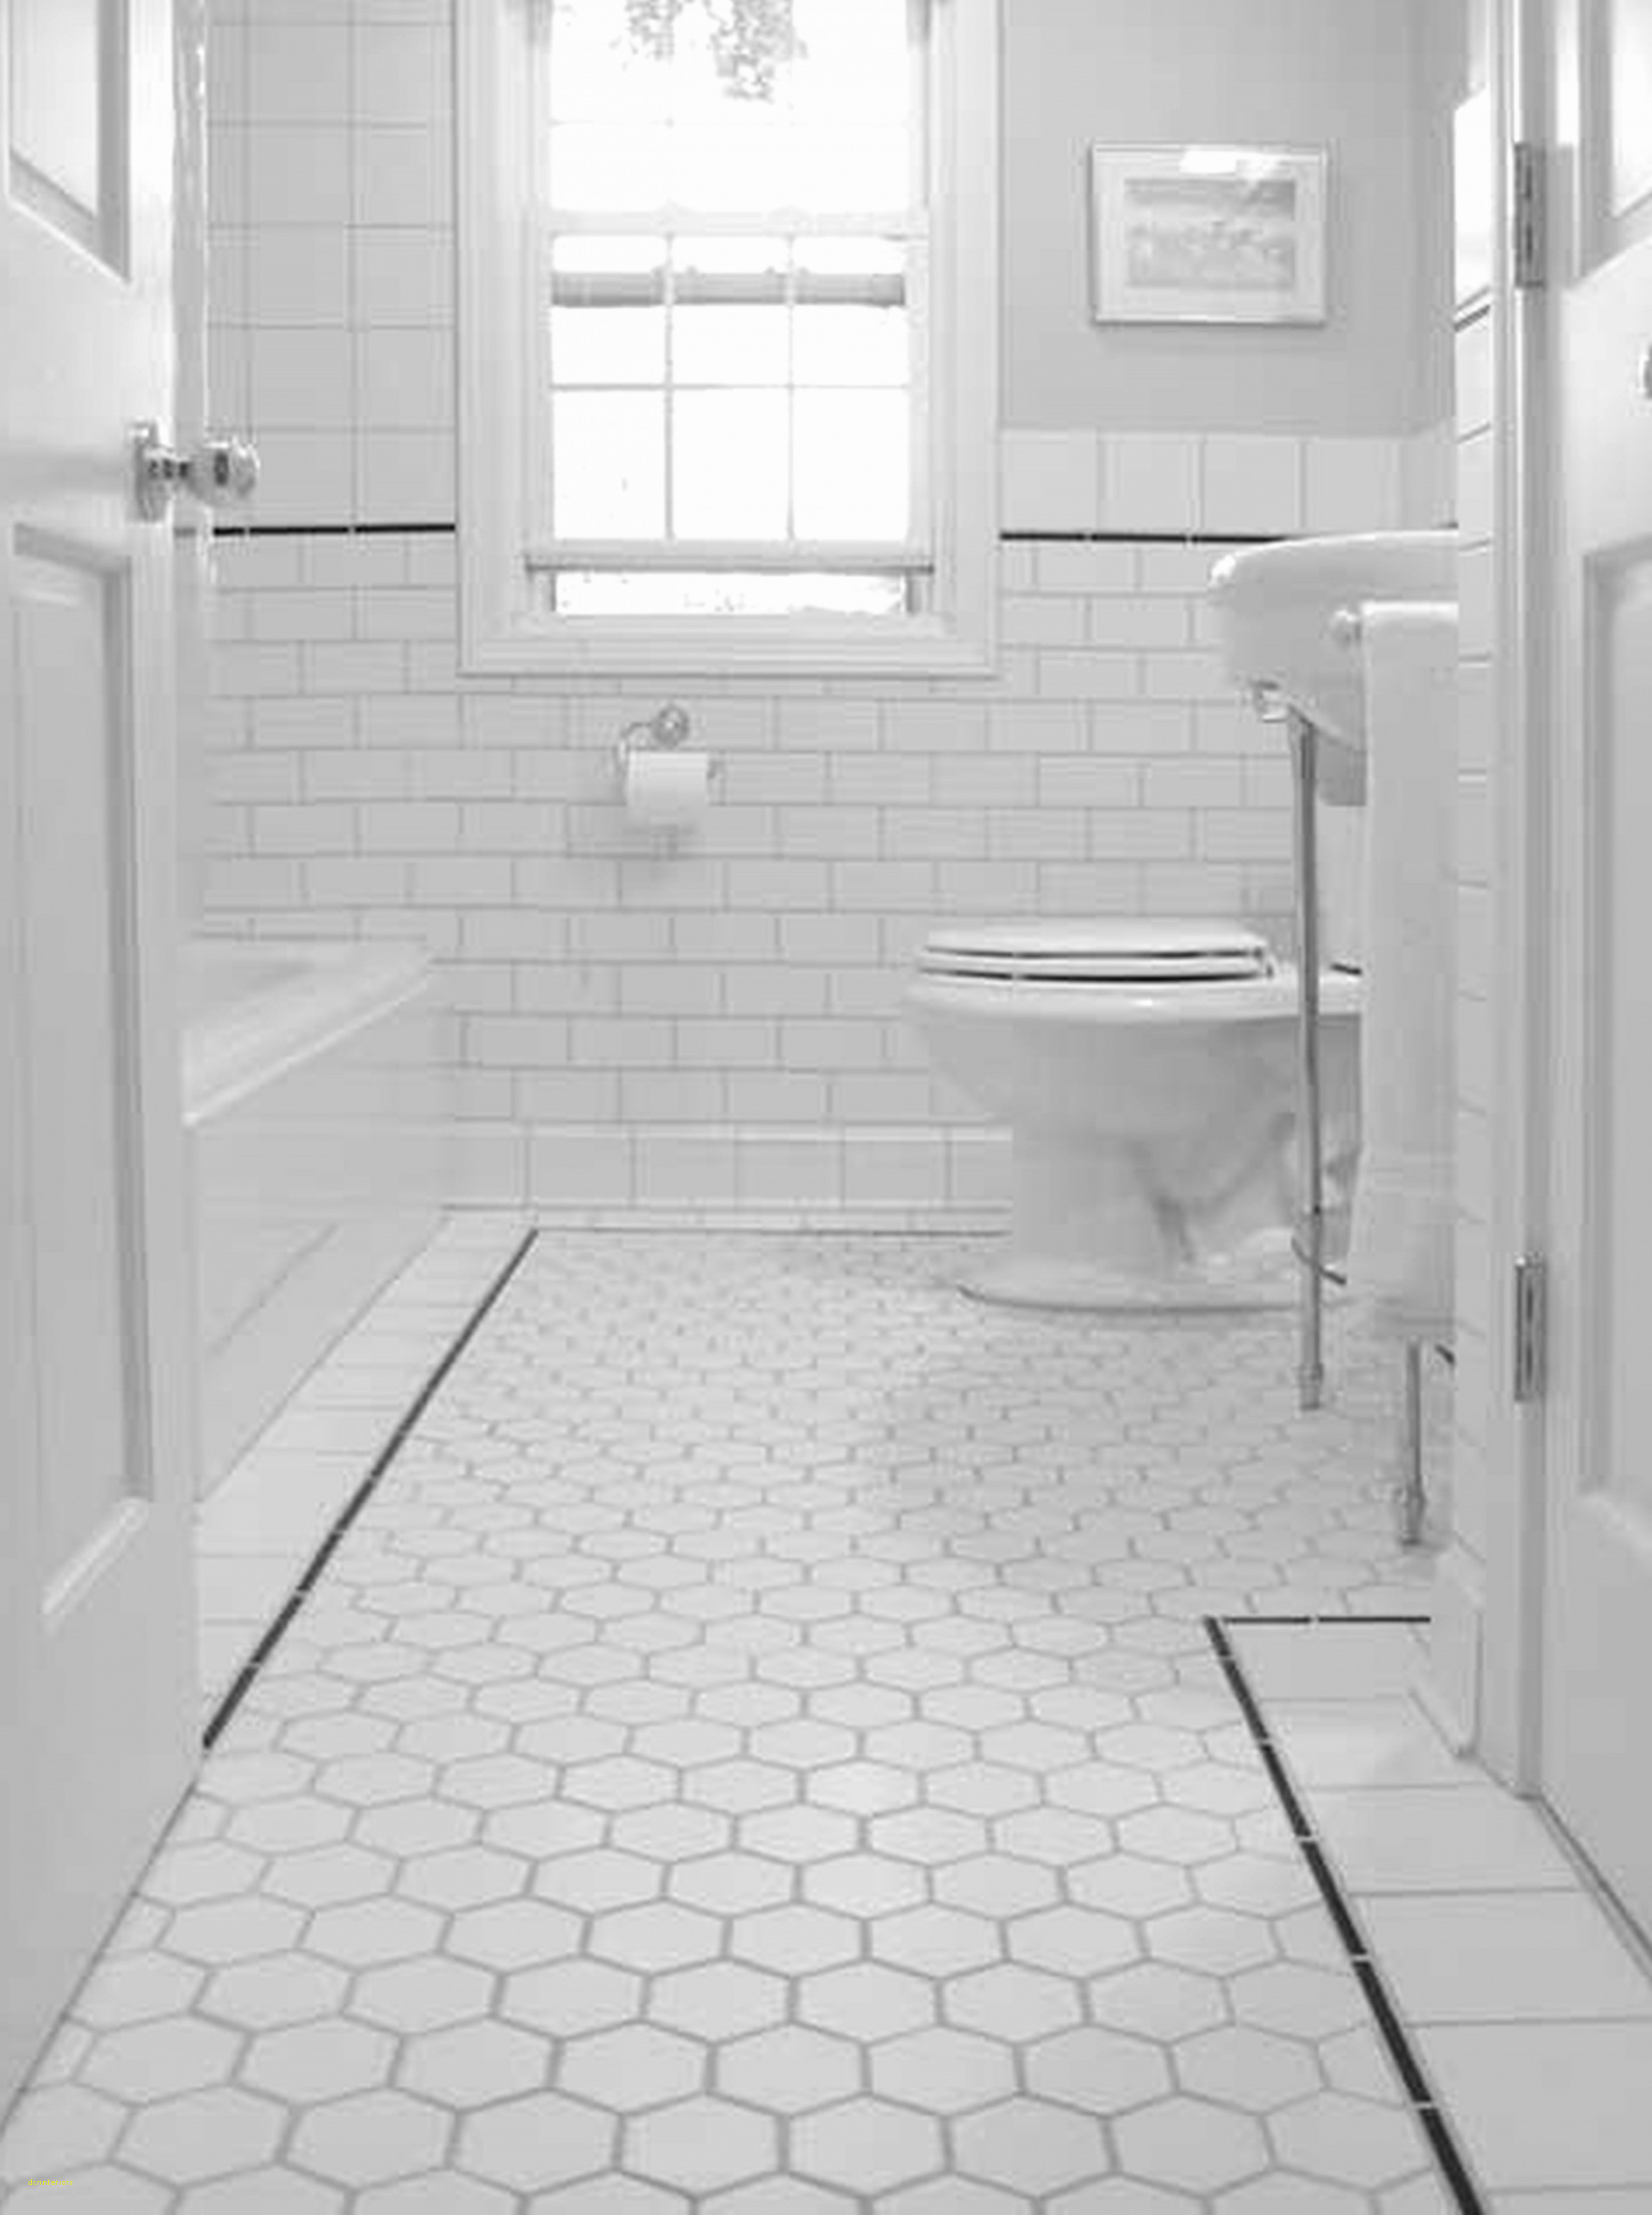 hardwood floors and grey walls of 39 new laying floor tiles photo within laying bathroom floor tiles new stunning inspirational installing faucet h sink new bathroom i 0d decor